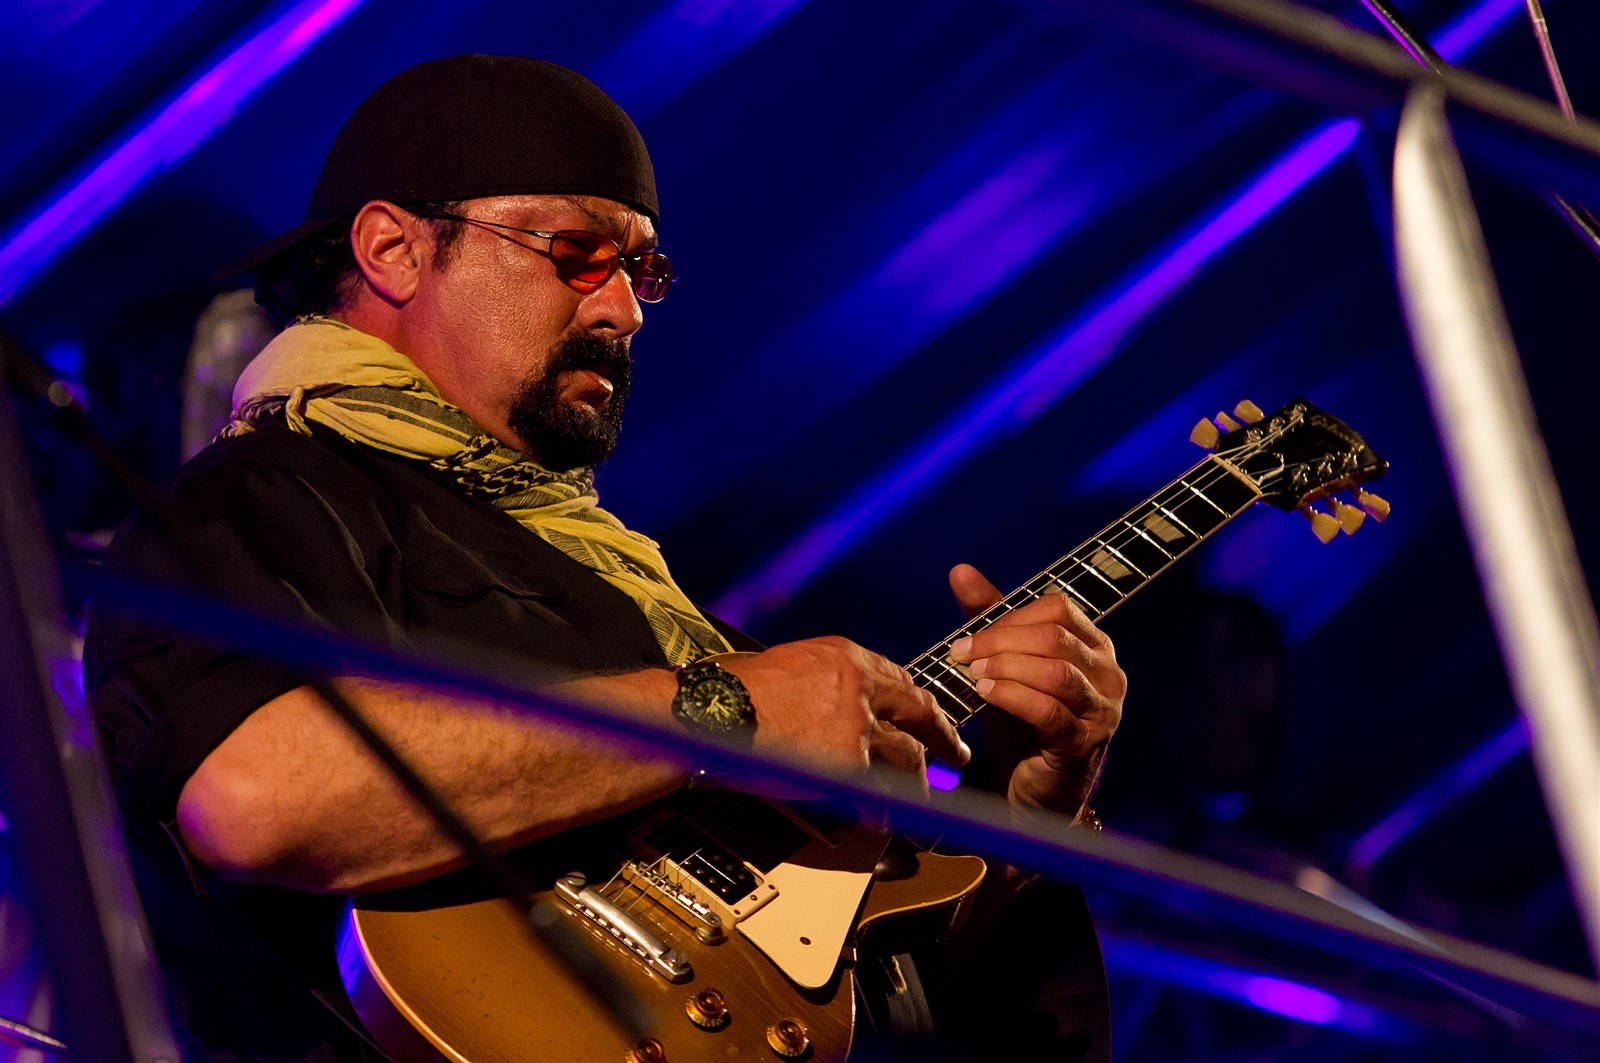 Steven Seagal na střeše Red Bul Tour Busu na Rock for People 2014